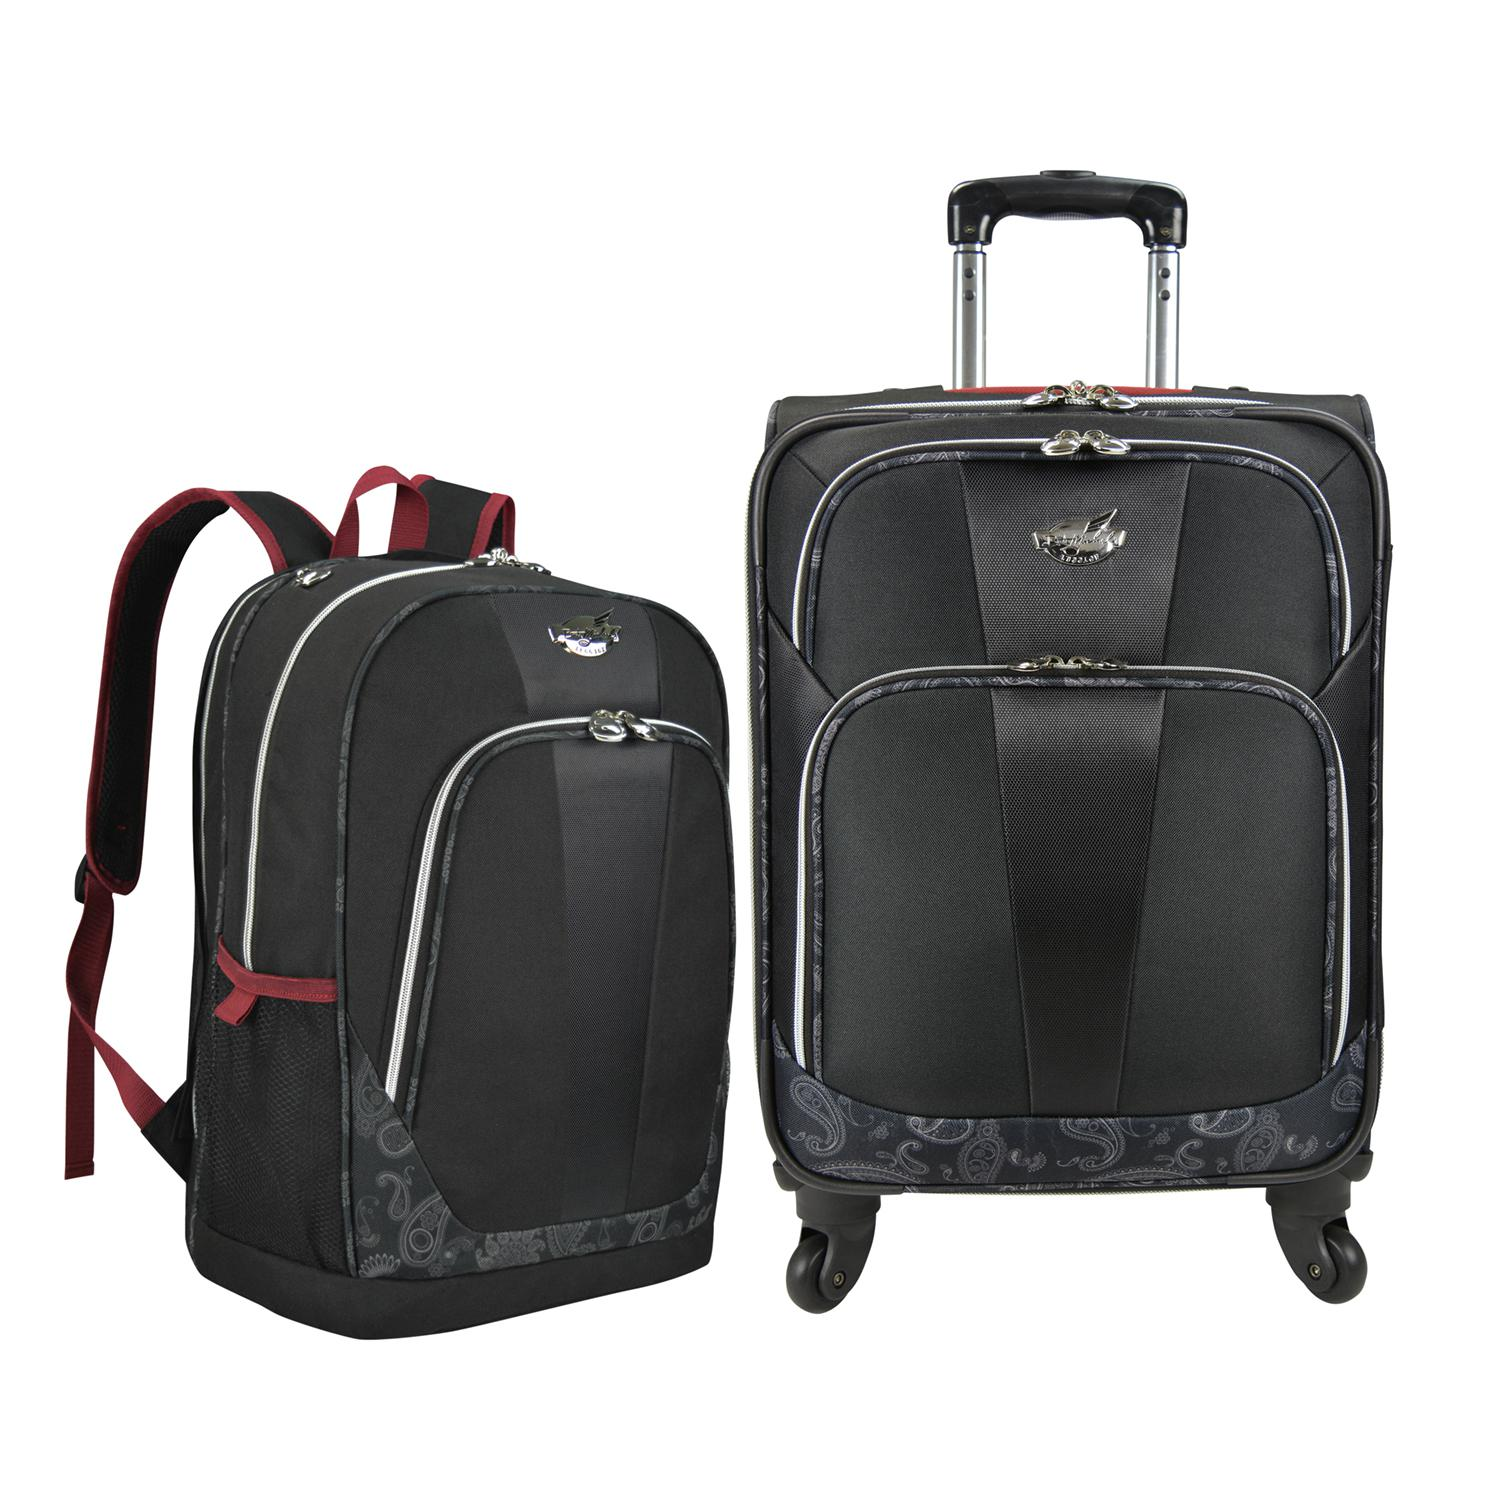 Bret Michaels Classic Road 2 Piece Carry-On Luggage and Laptop Backpack Set